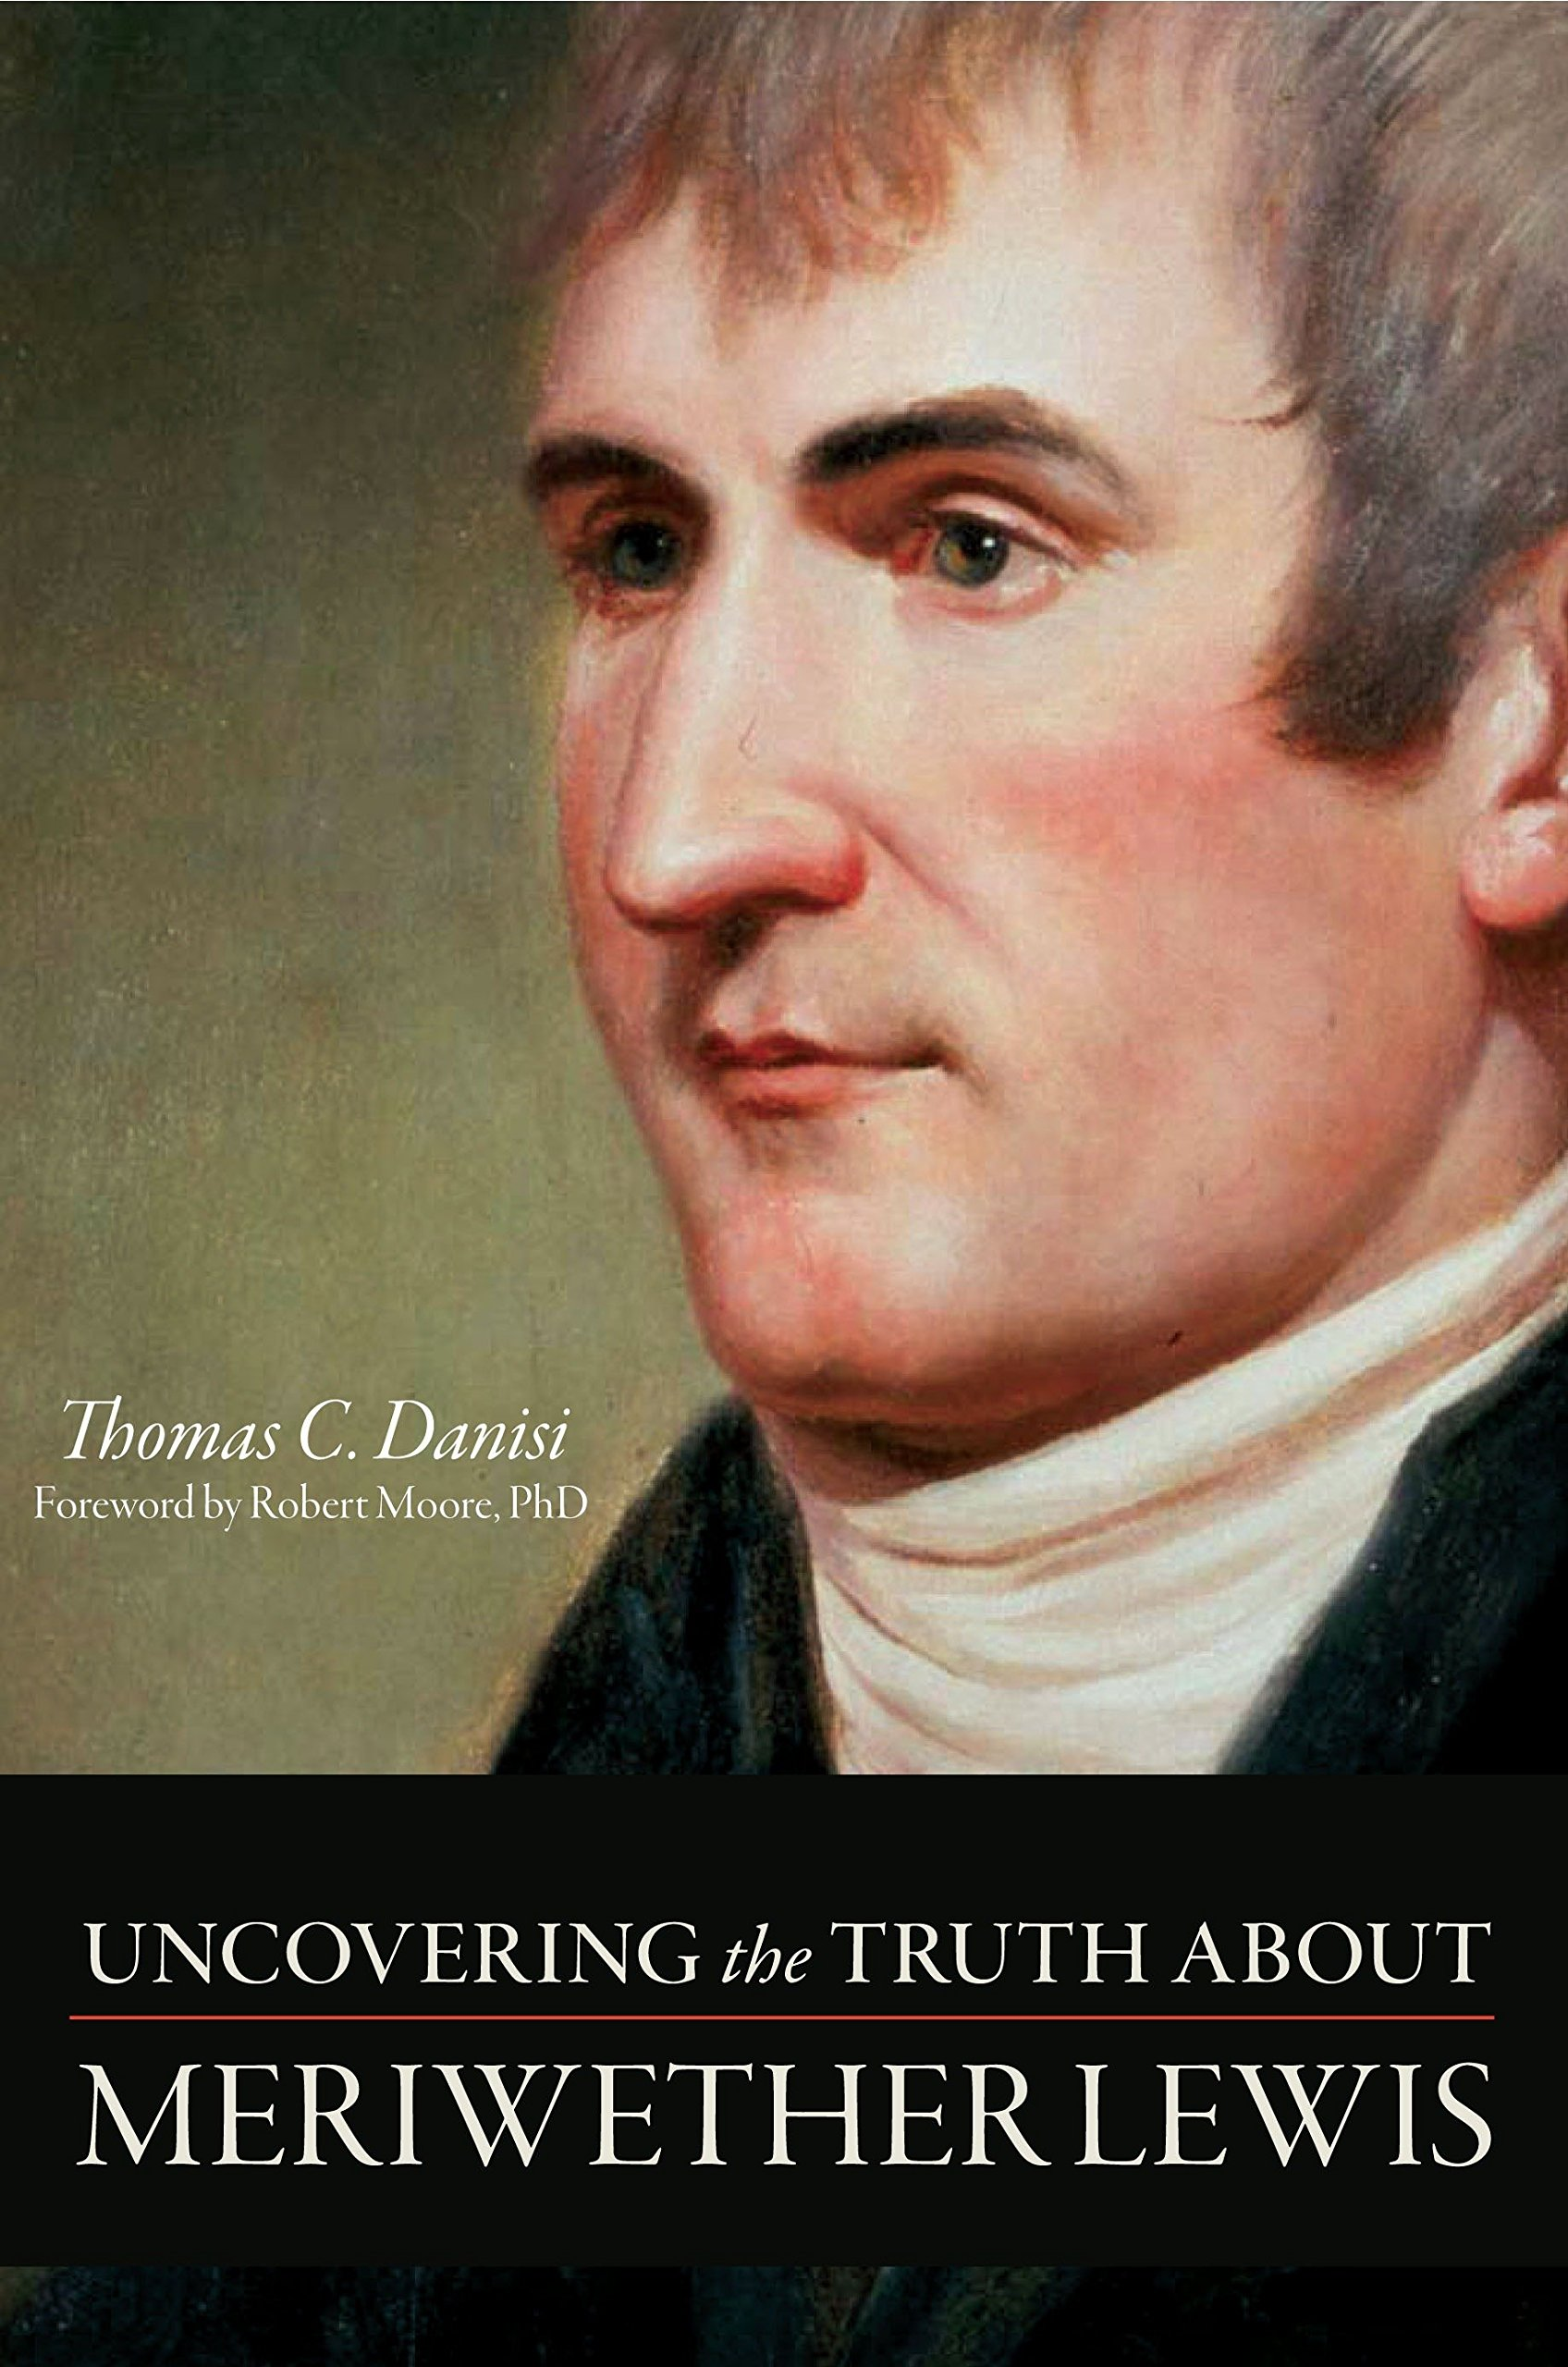 Uncovering the Truth About Meriwether Lewis PDF